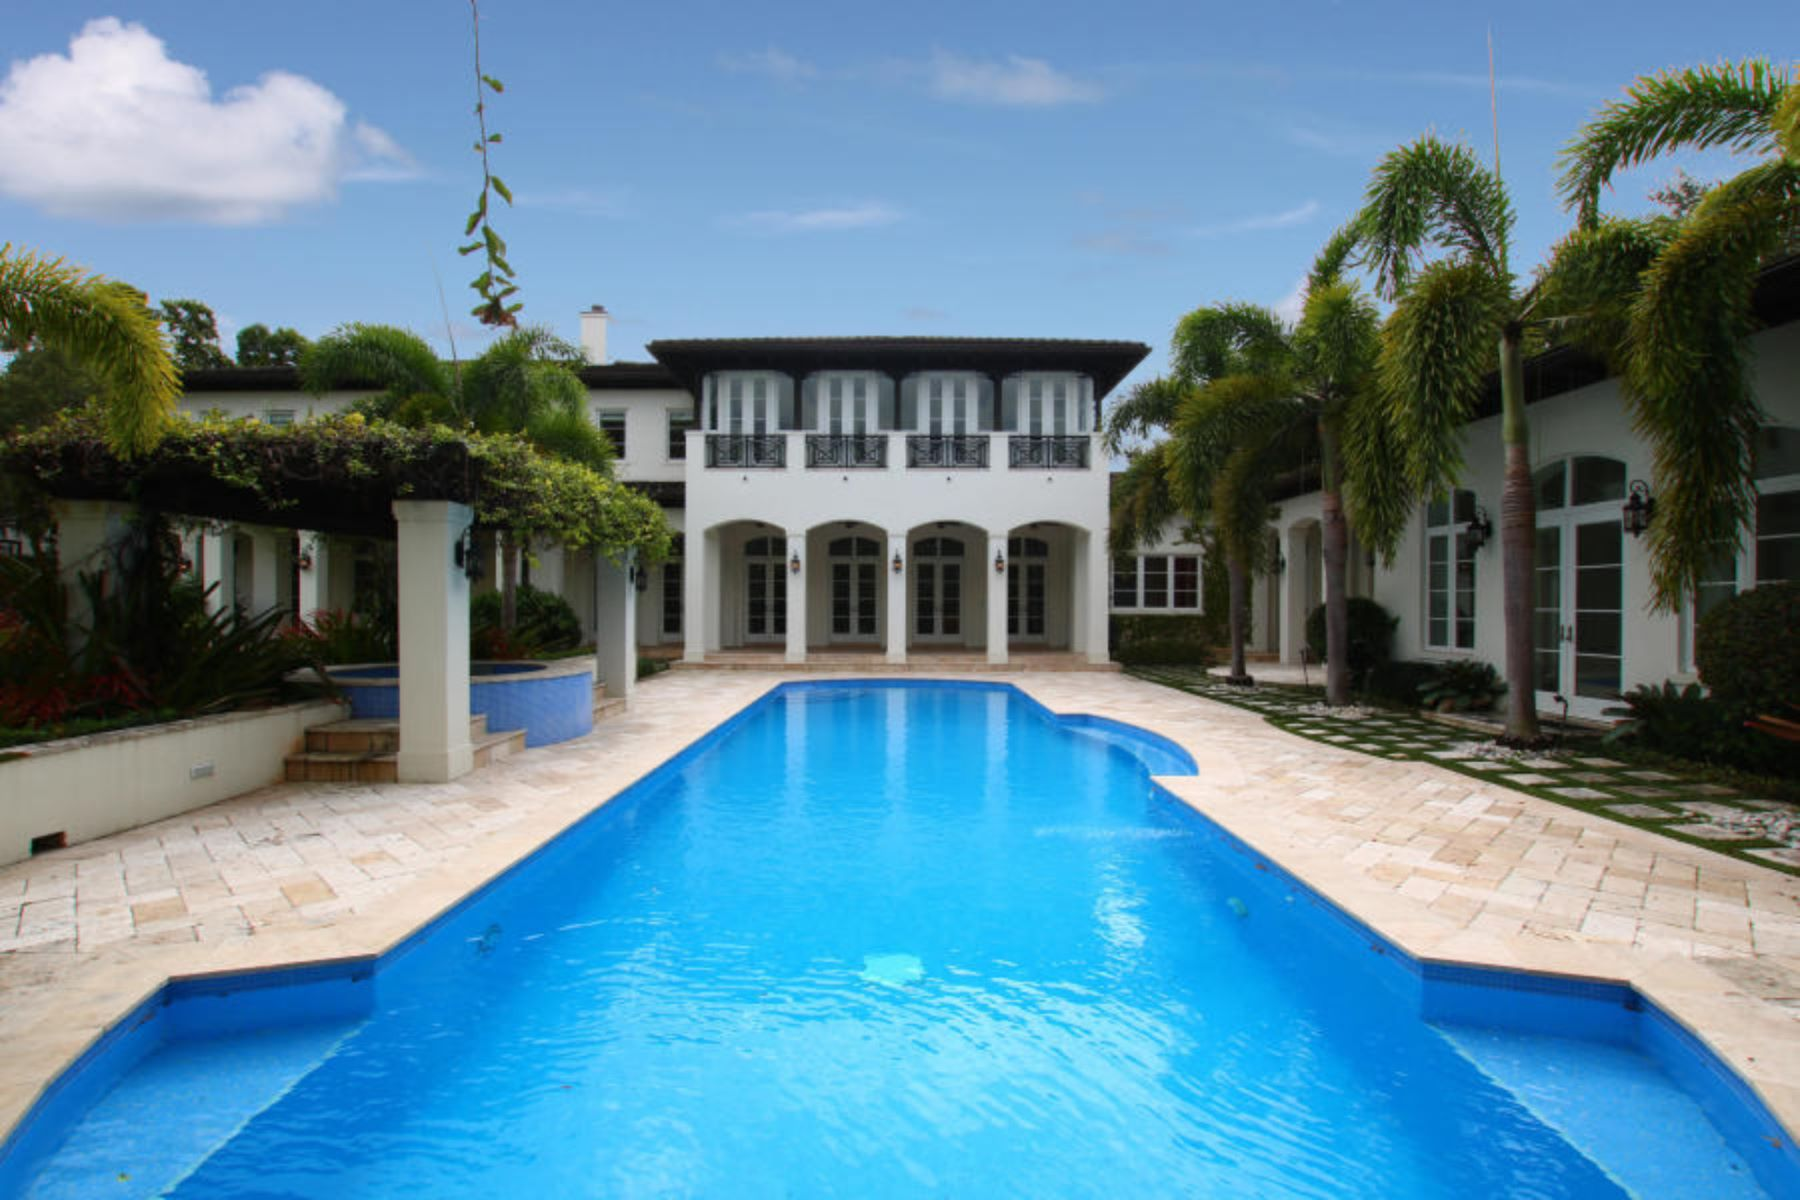 Casa Unifamiliar por un Venta en Prestigious Home in Pinecrest 5775 SW 114th Terr Pinecrest, Florida 33156 Estados Unidos